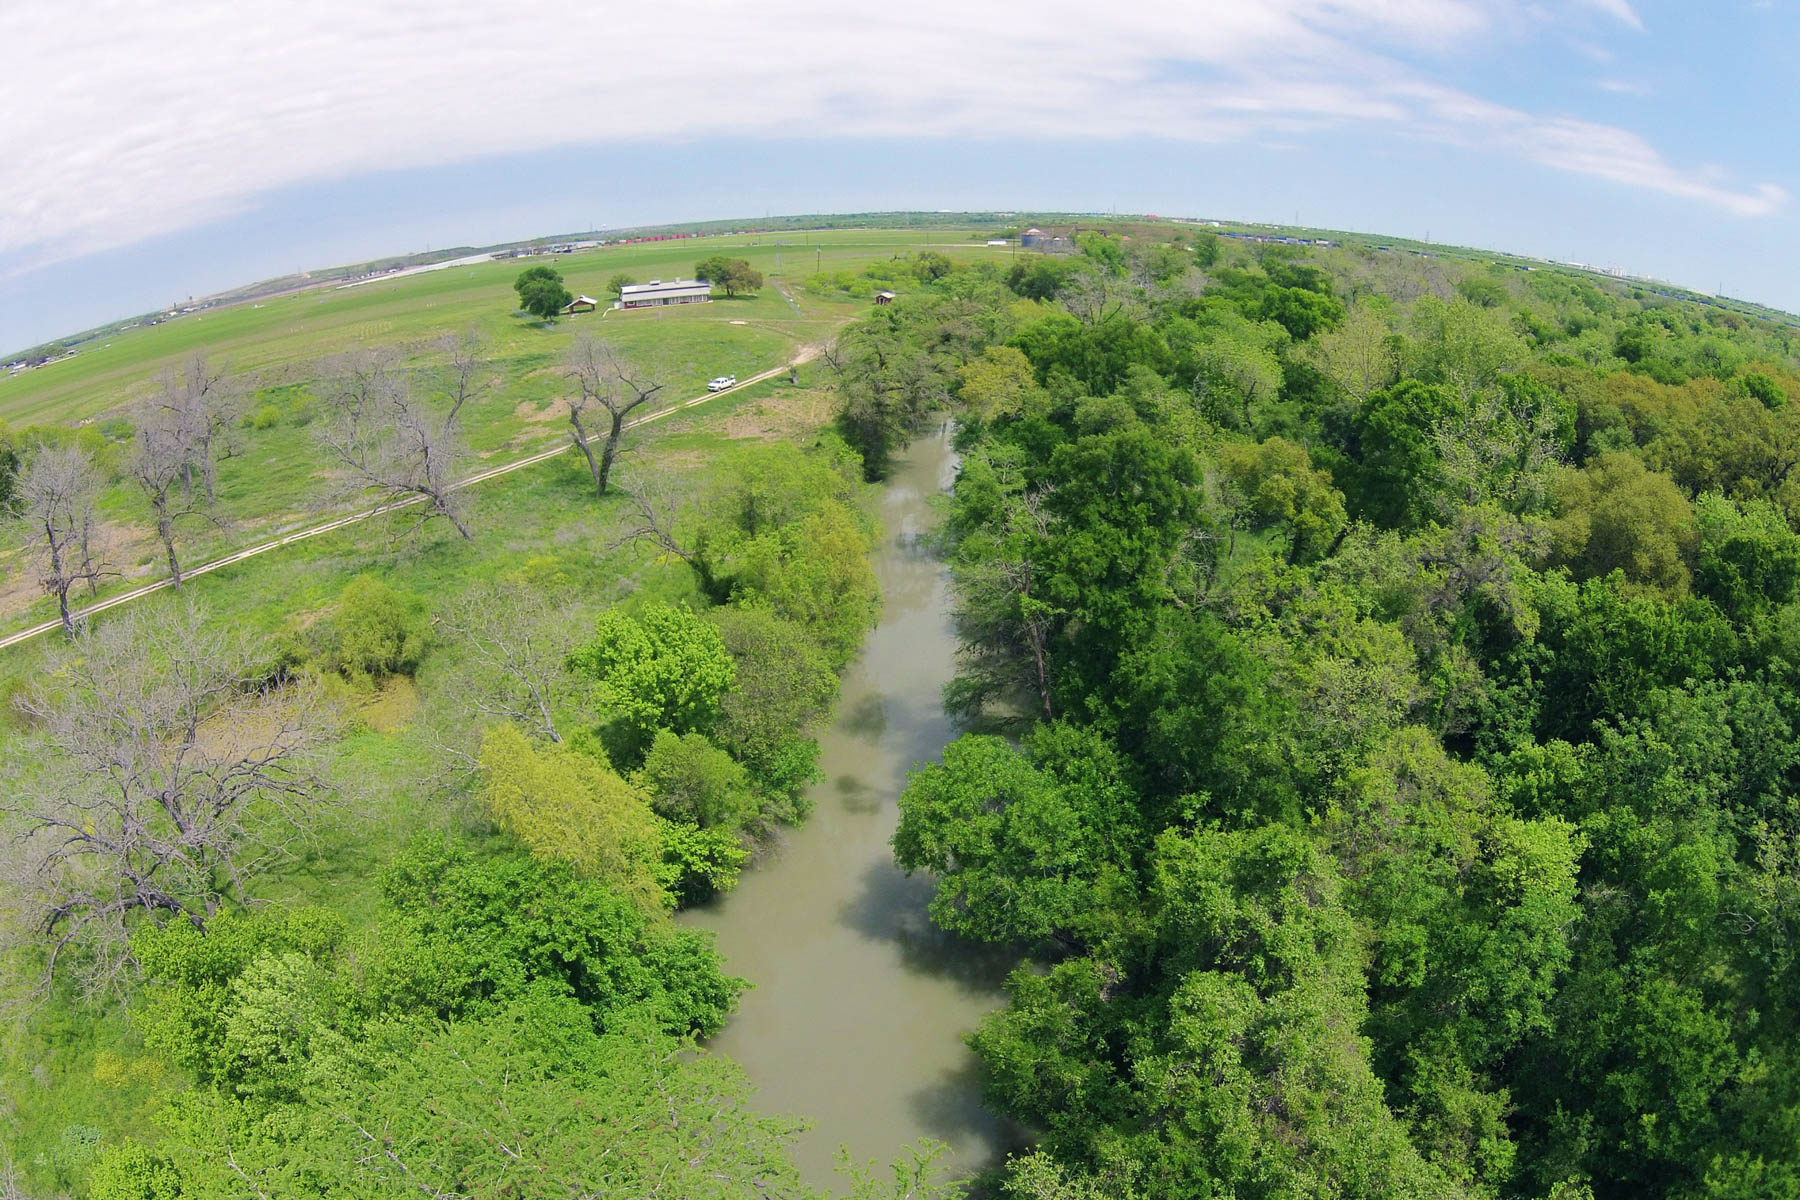 Ferme / Ranch / Plantation pour l Vente à 101+- Acres Bexar County - Medina River Ranch 8182 Old Pearsall Rd San Antonio, Texas, 78252 États-Unis